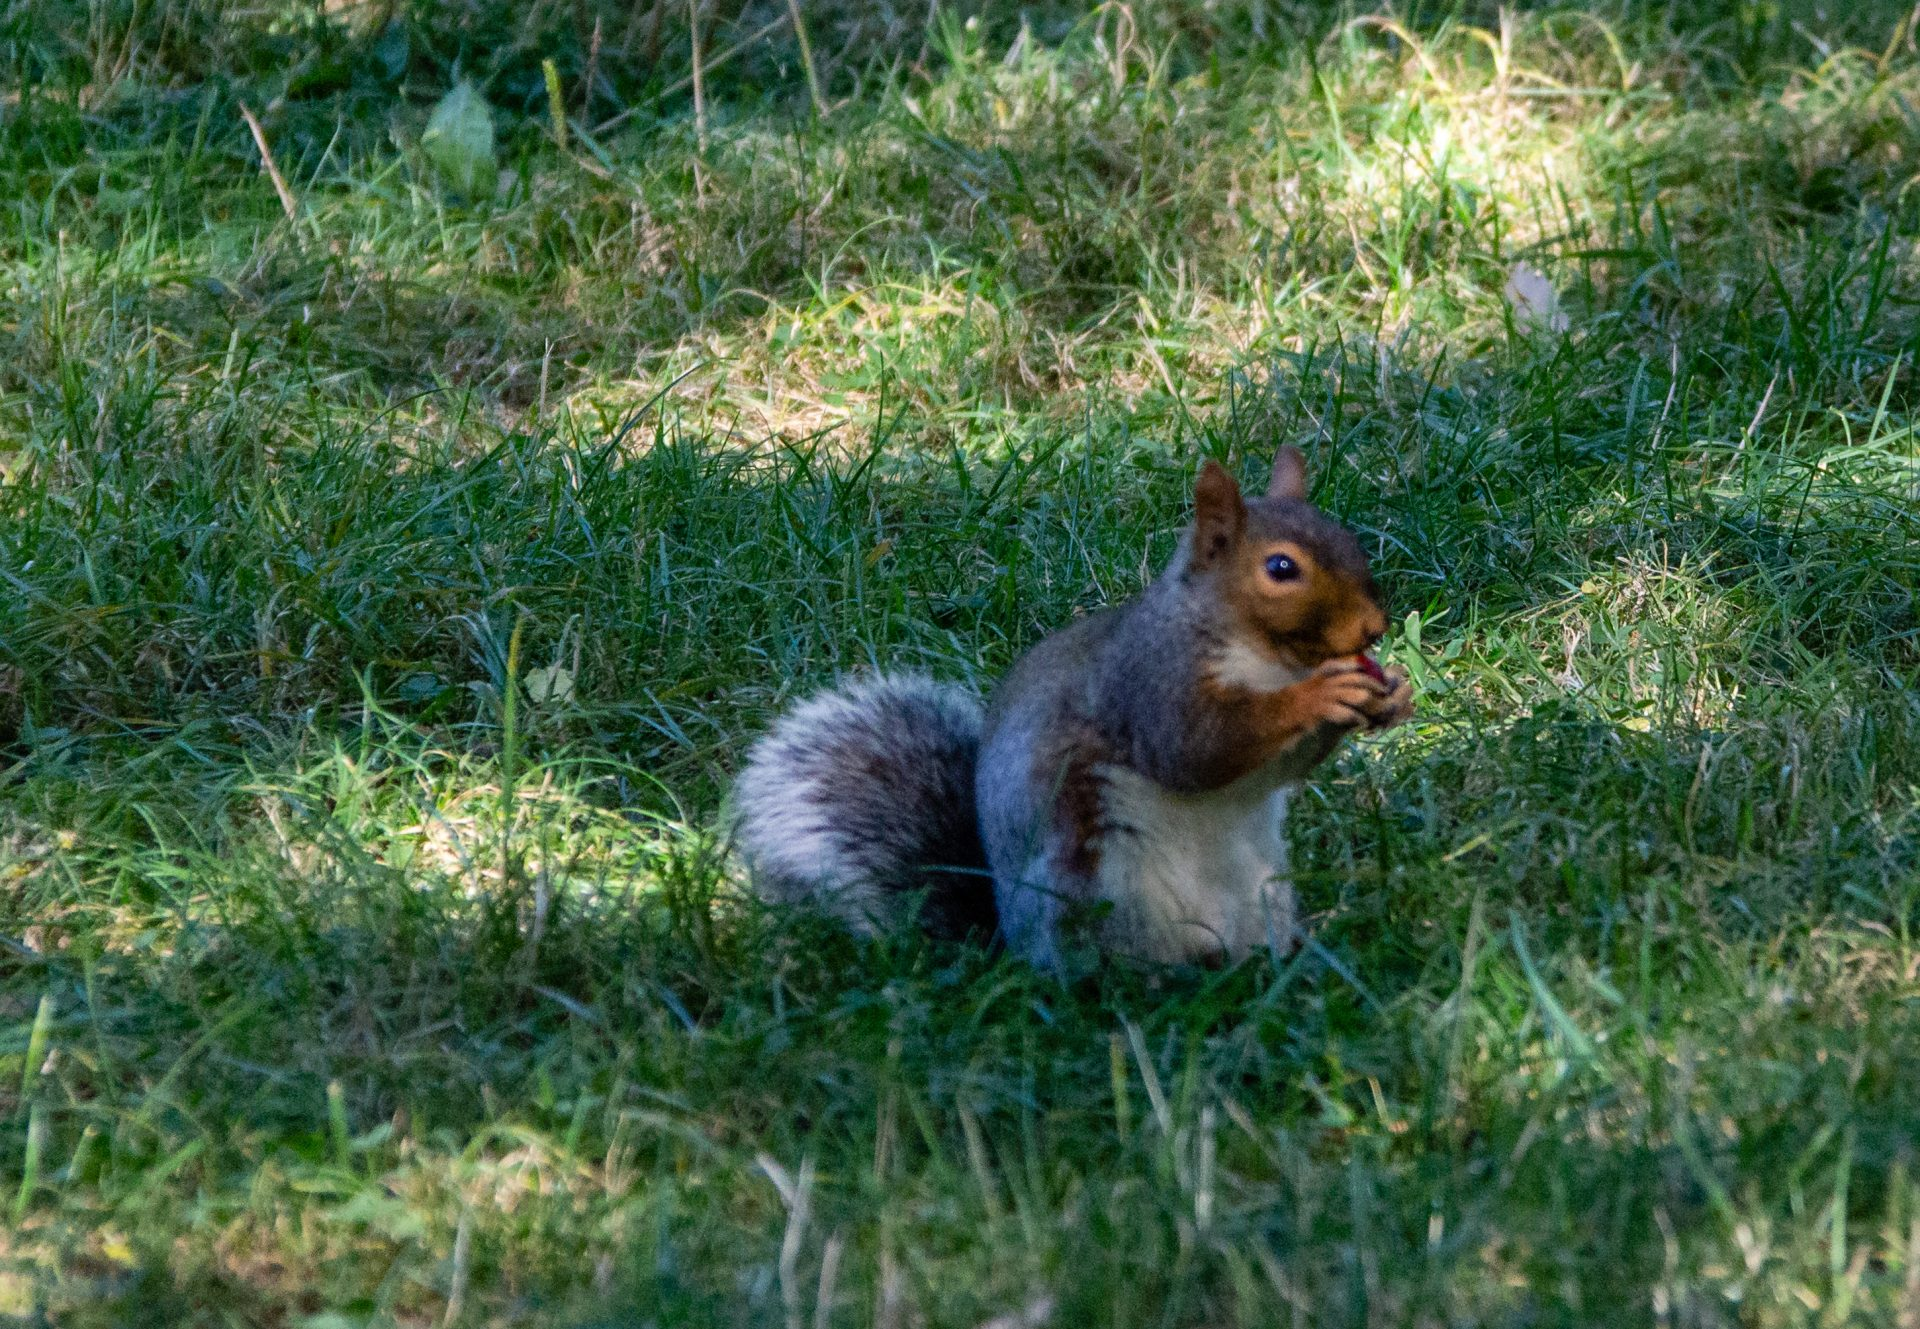 Squirrel in pittville park